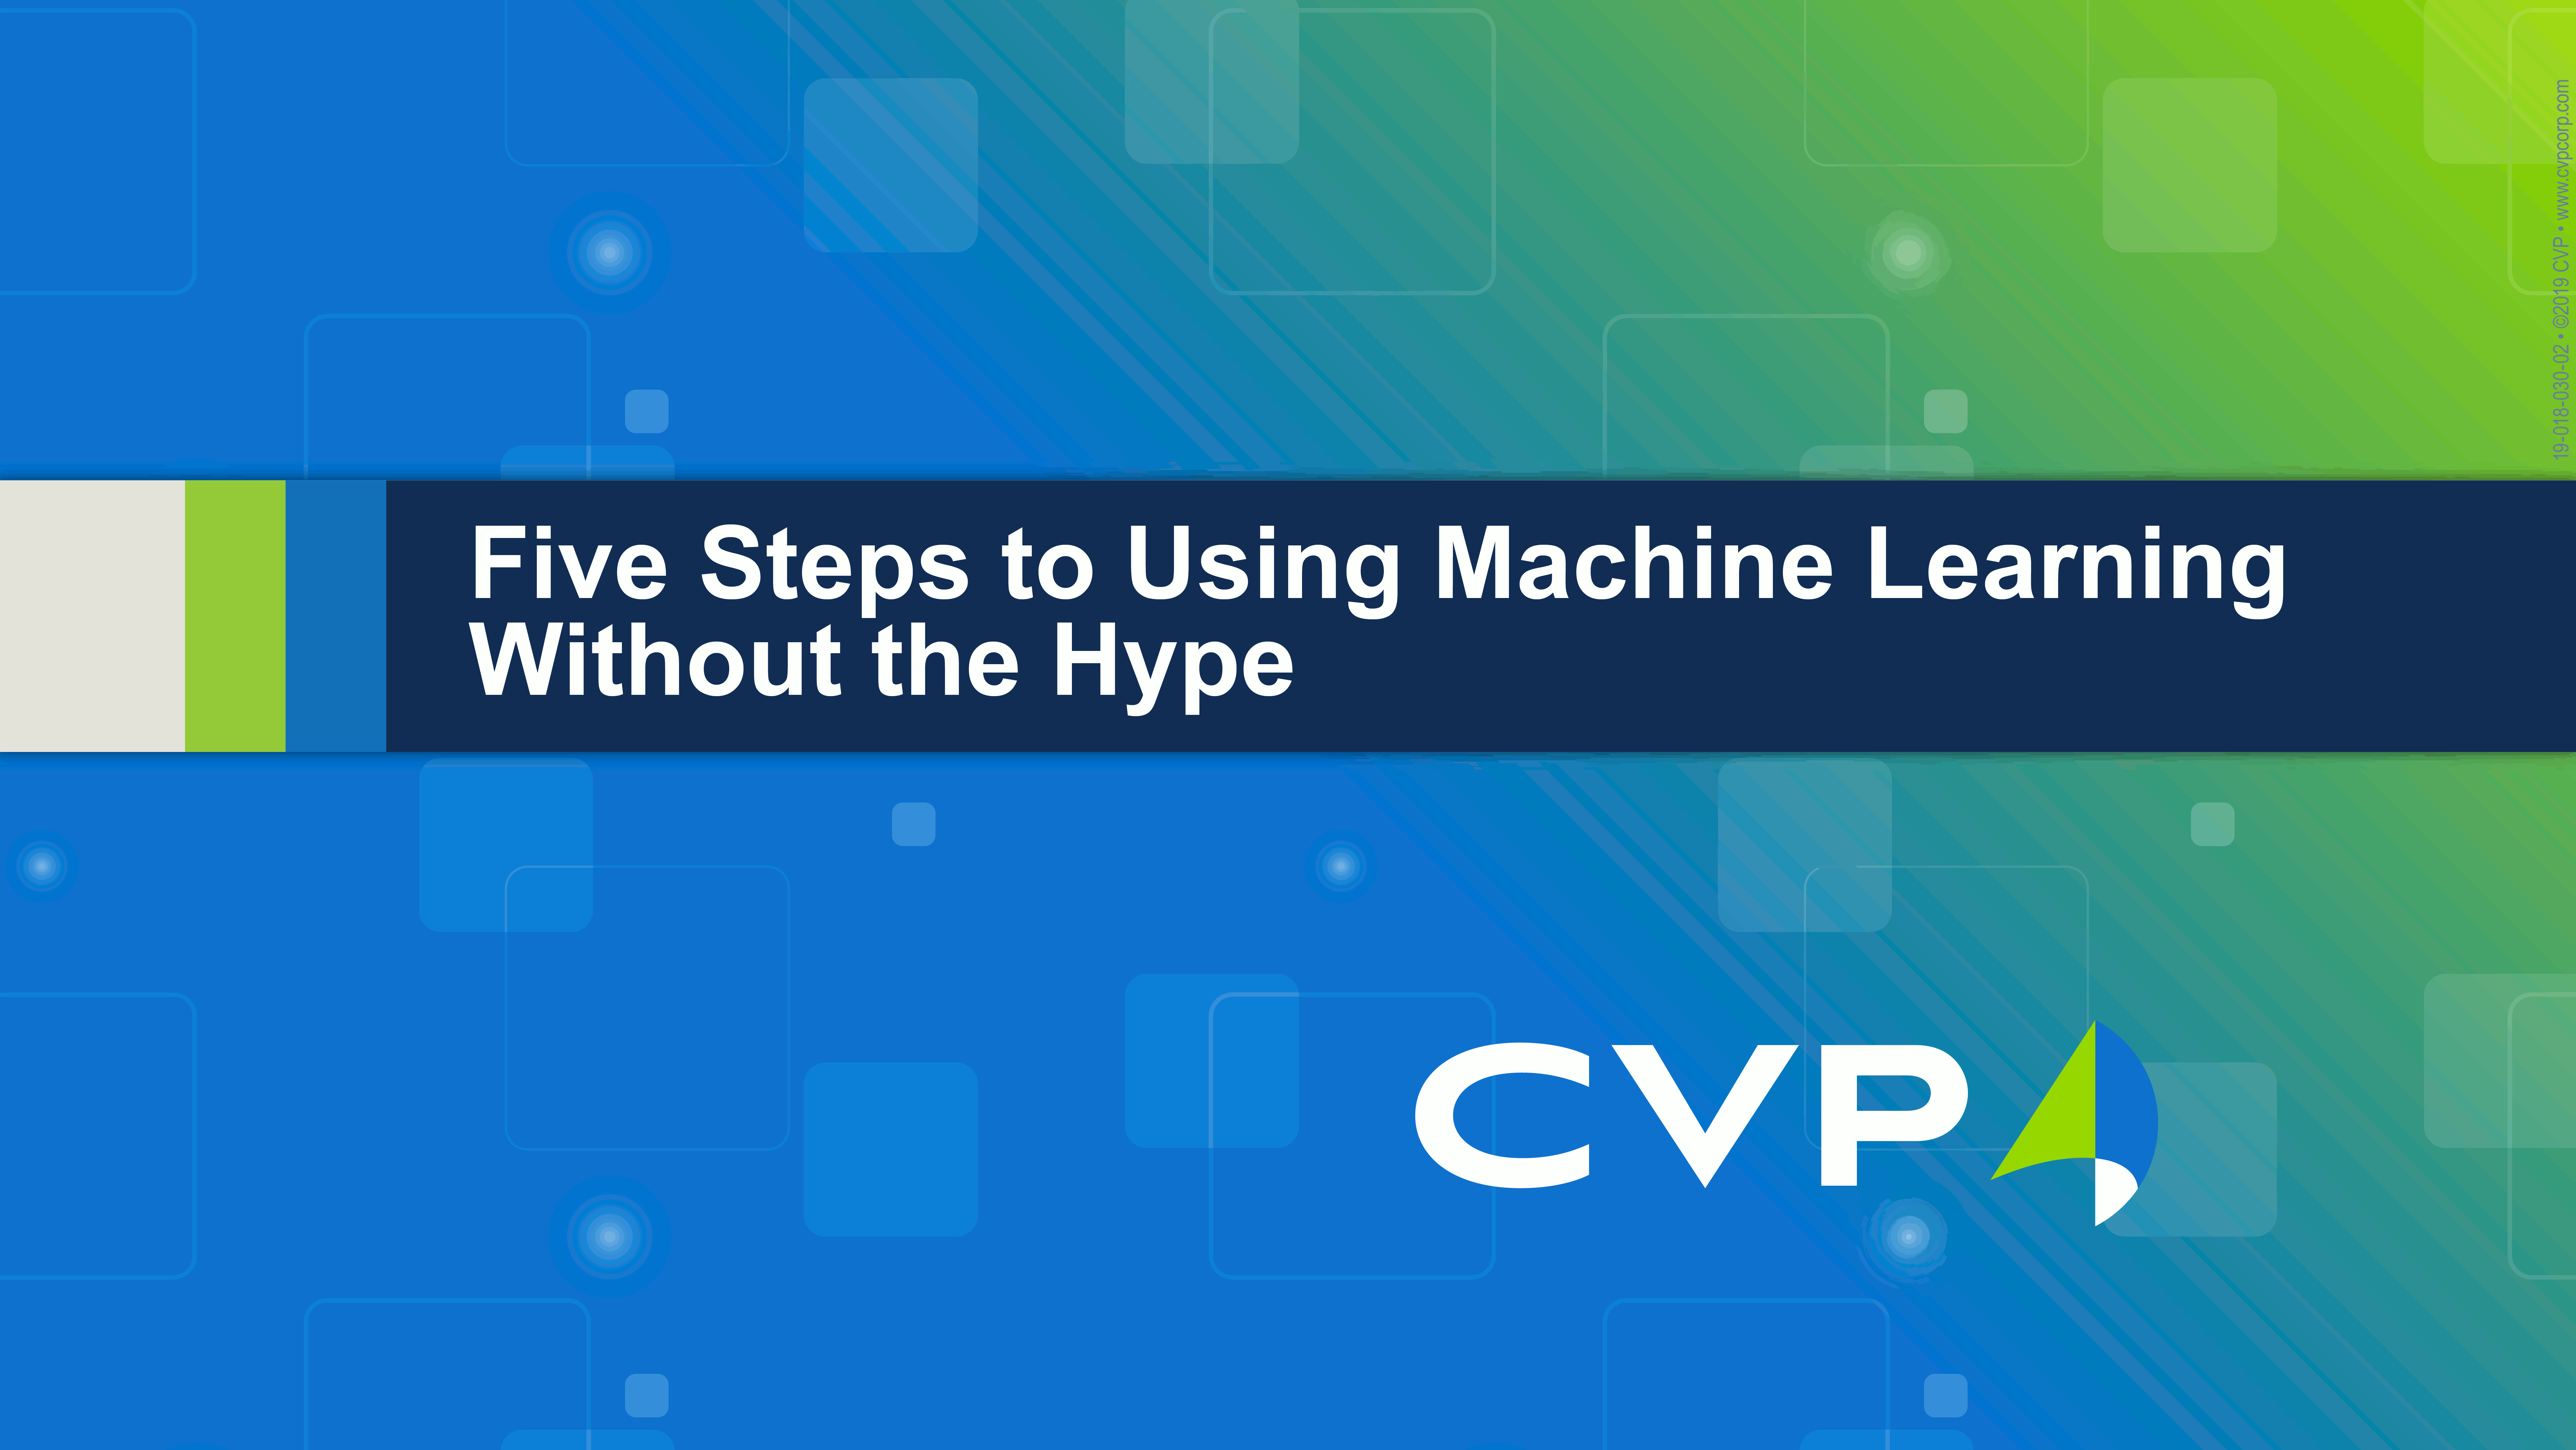 Five Steps To Using Machine Learning Without the Hype